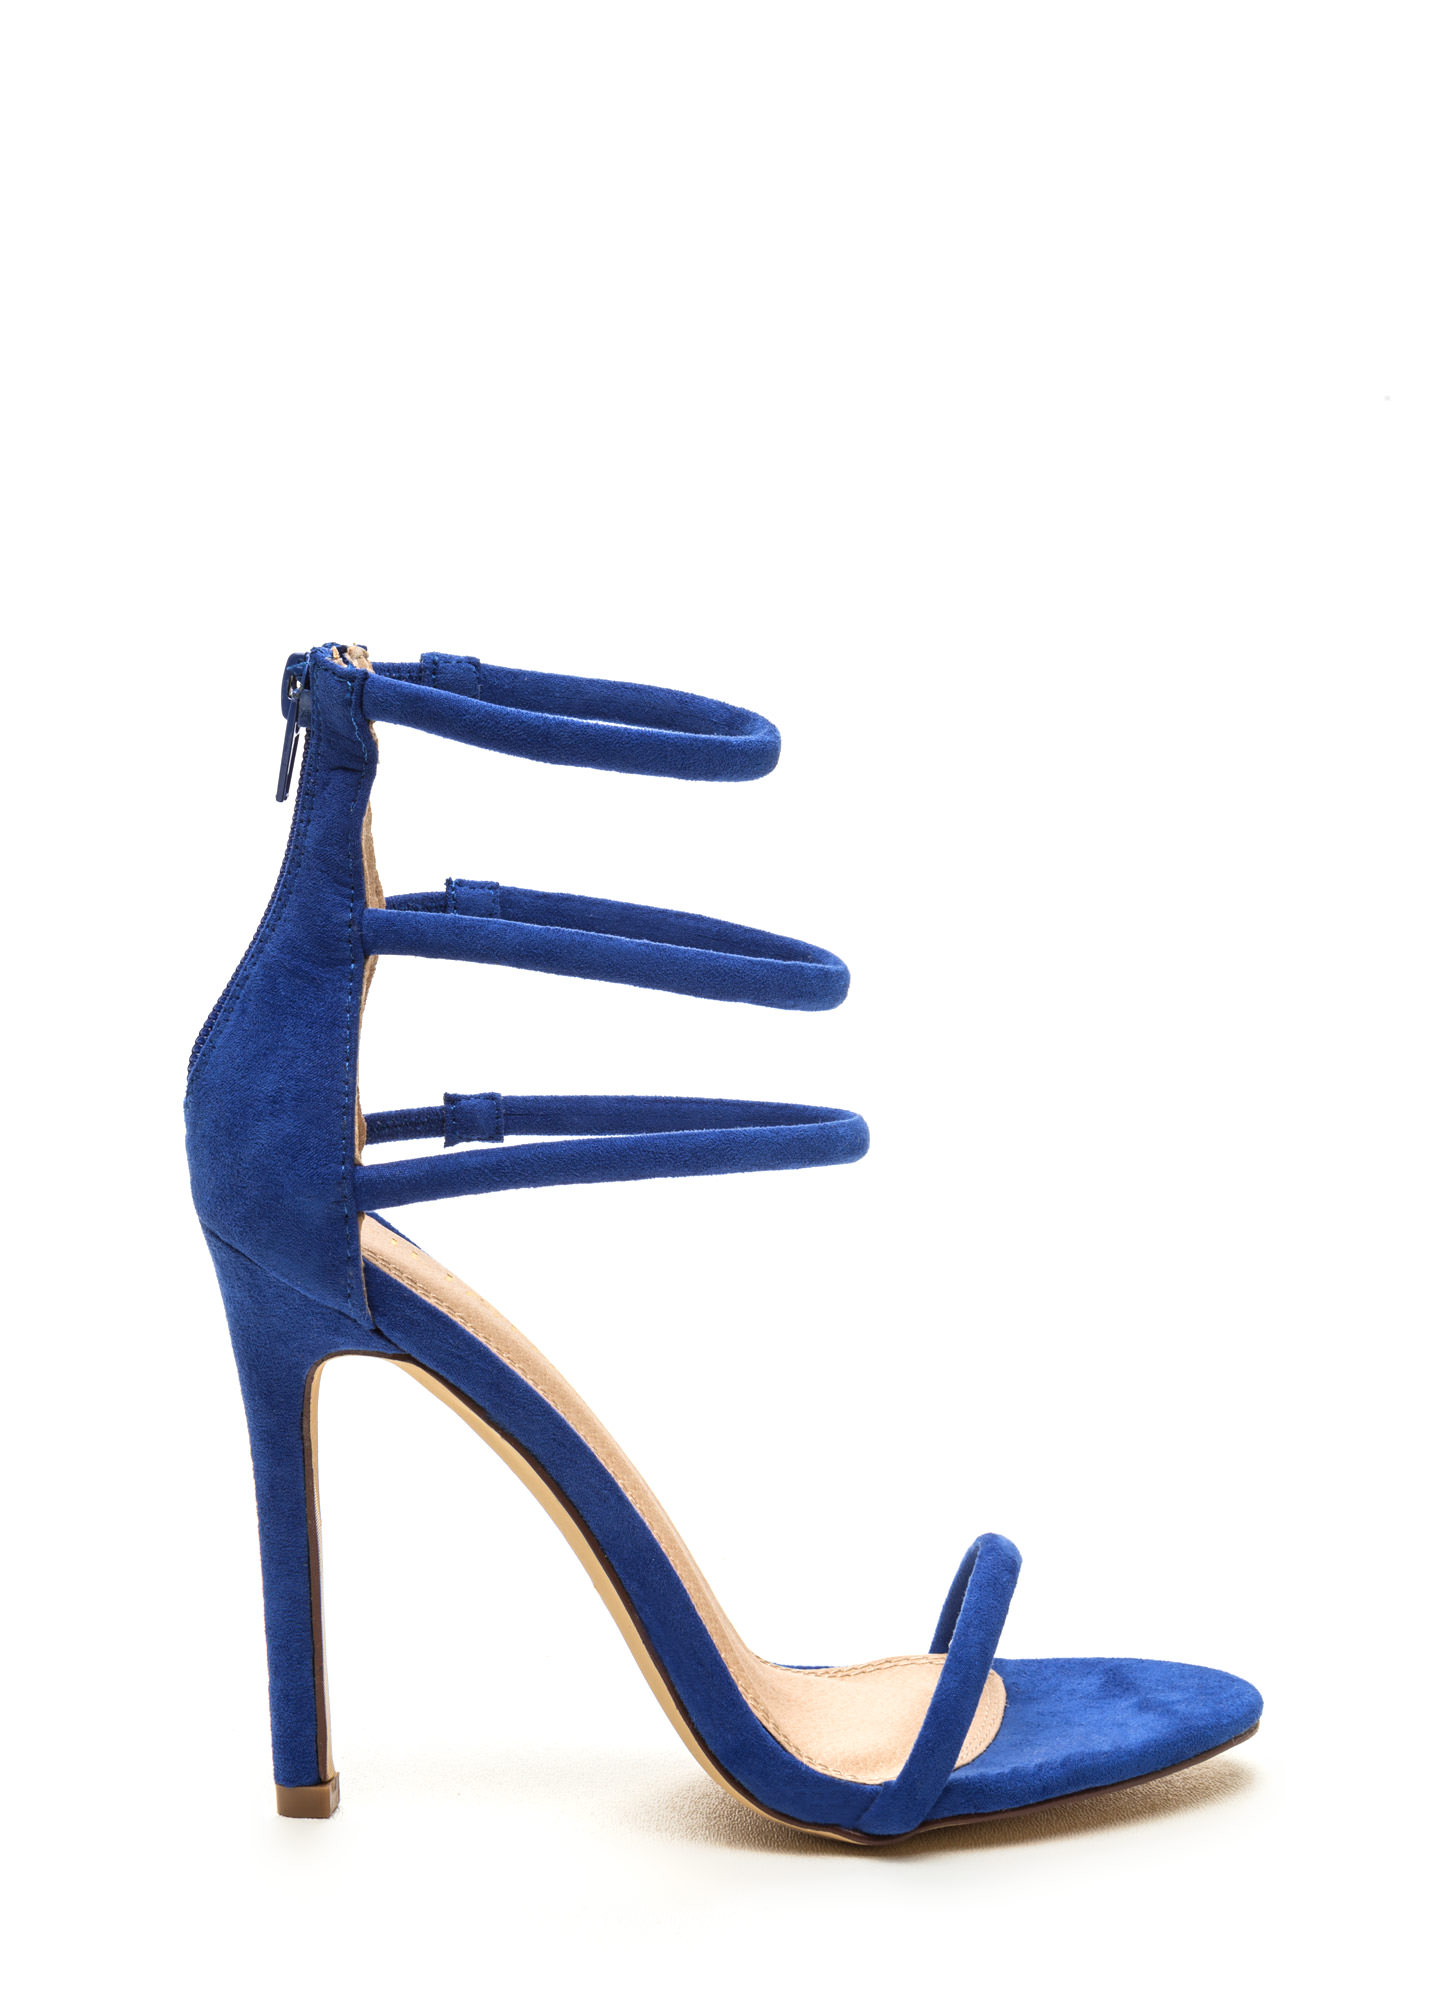 Navy Blue Strappy High Heel Sandals - Is Heel